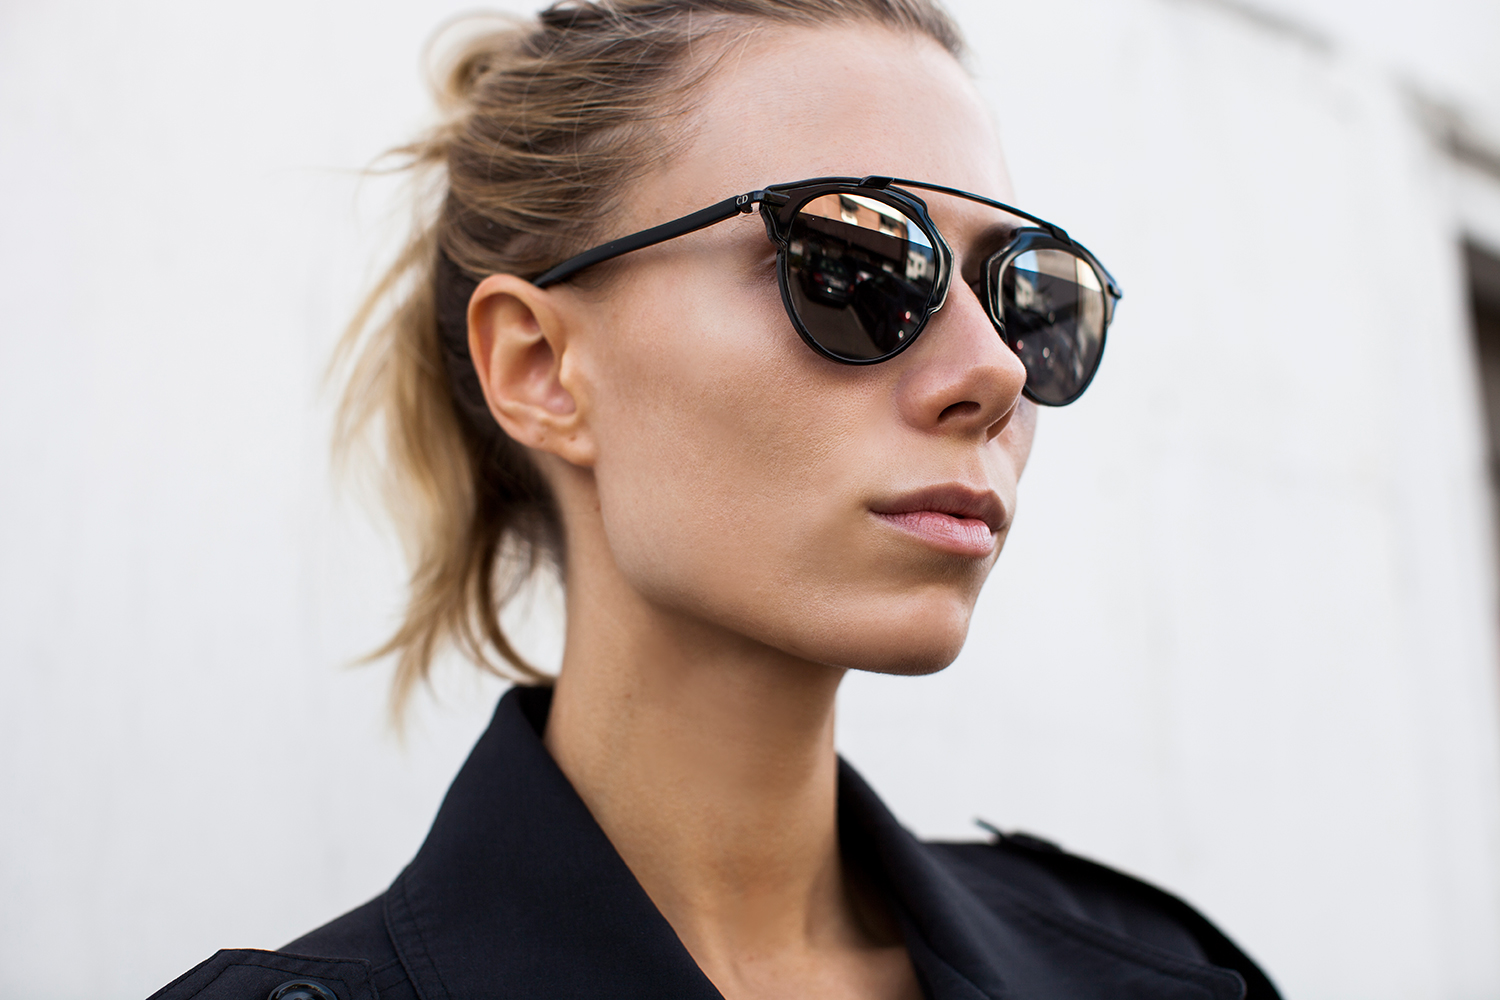 Trend Watch: Dior's So Real Sunglasses - The Front Row View